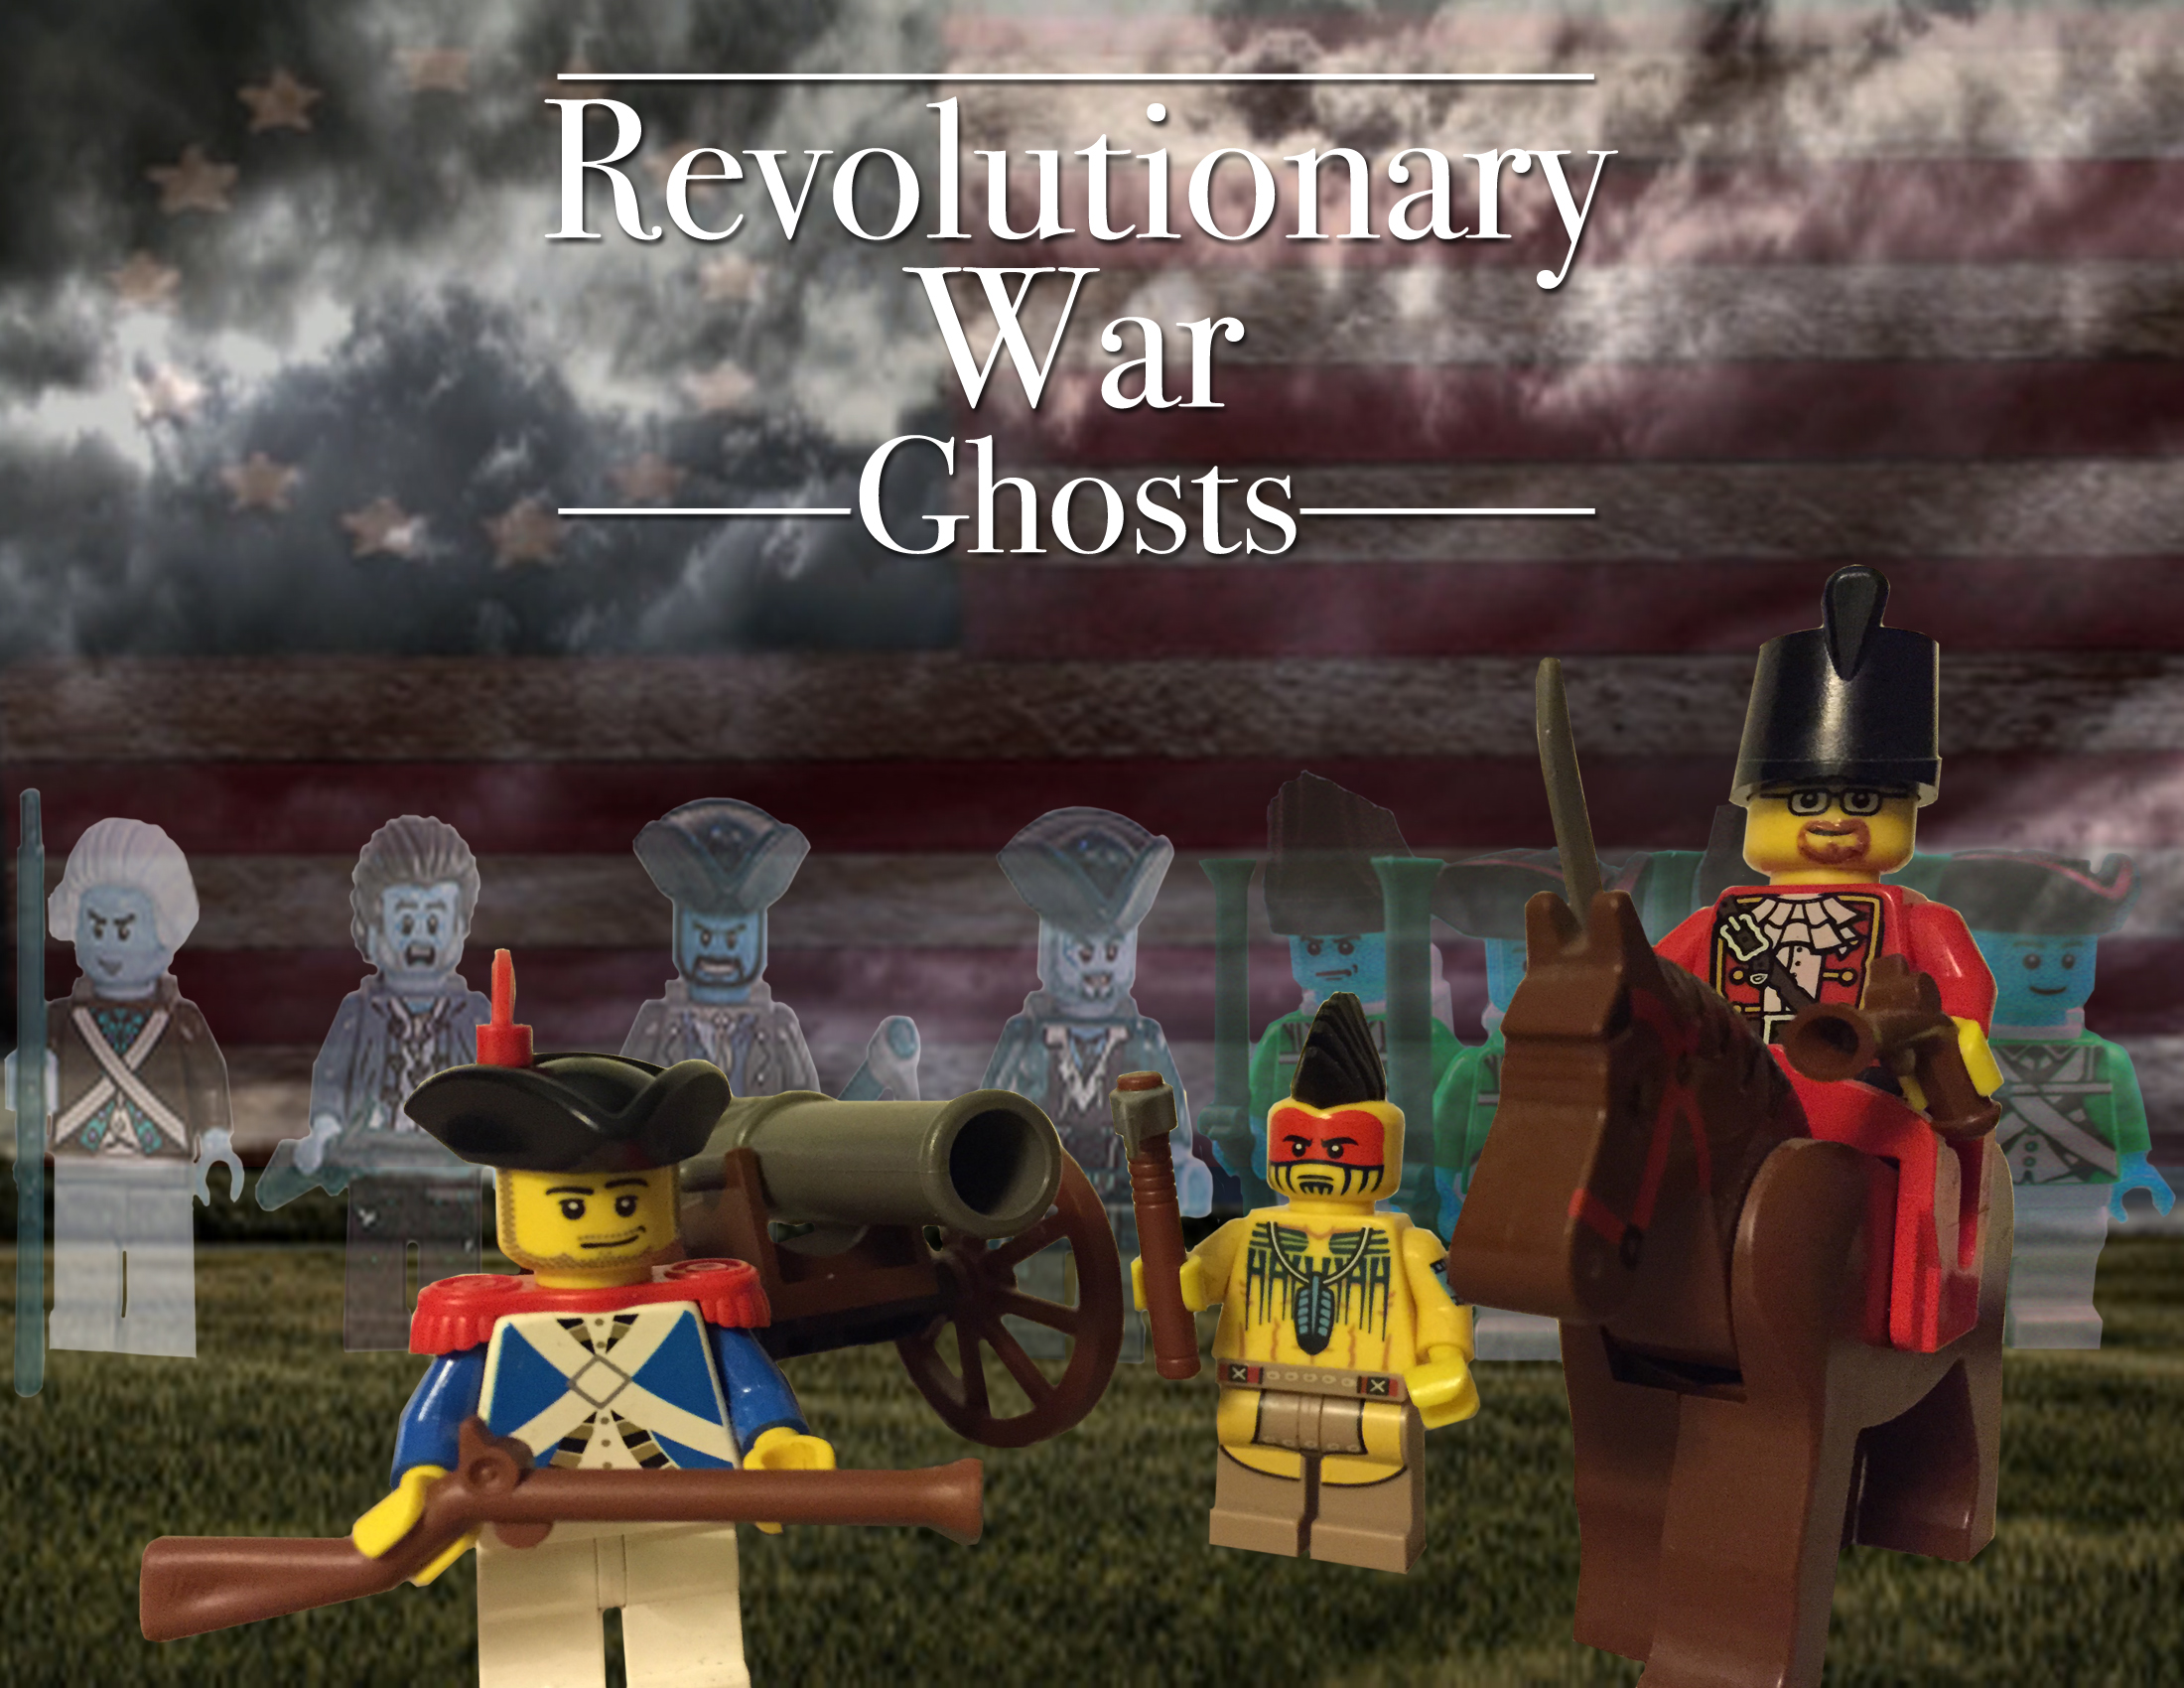 Revolutionary War Ghosts